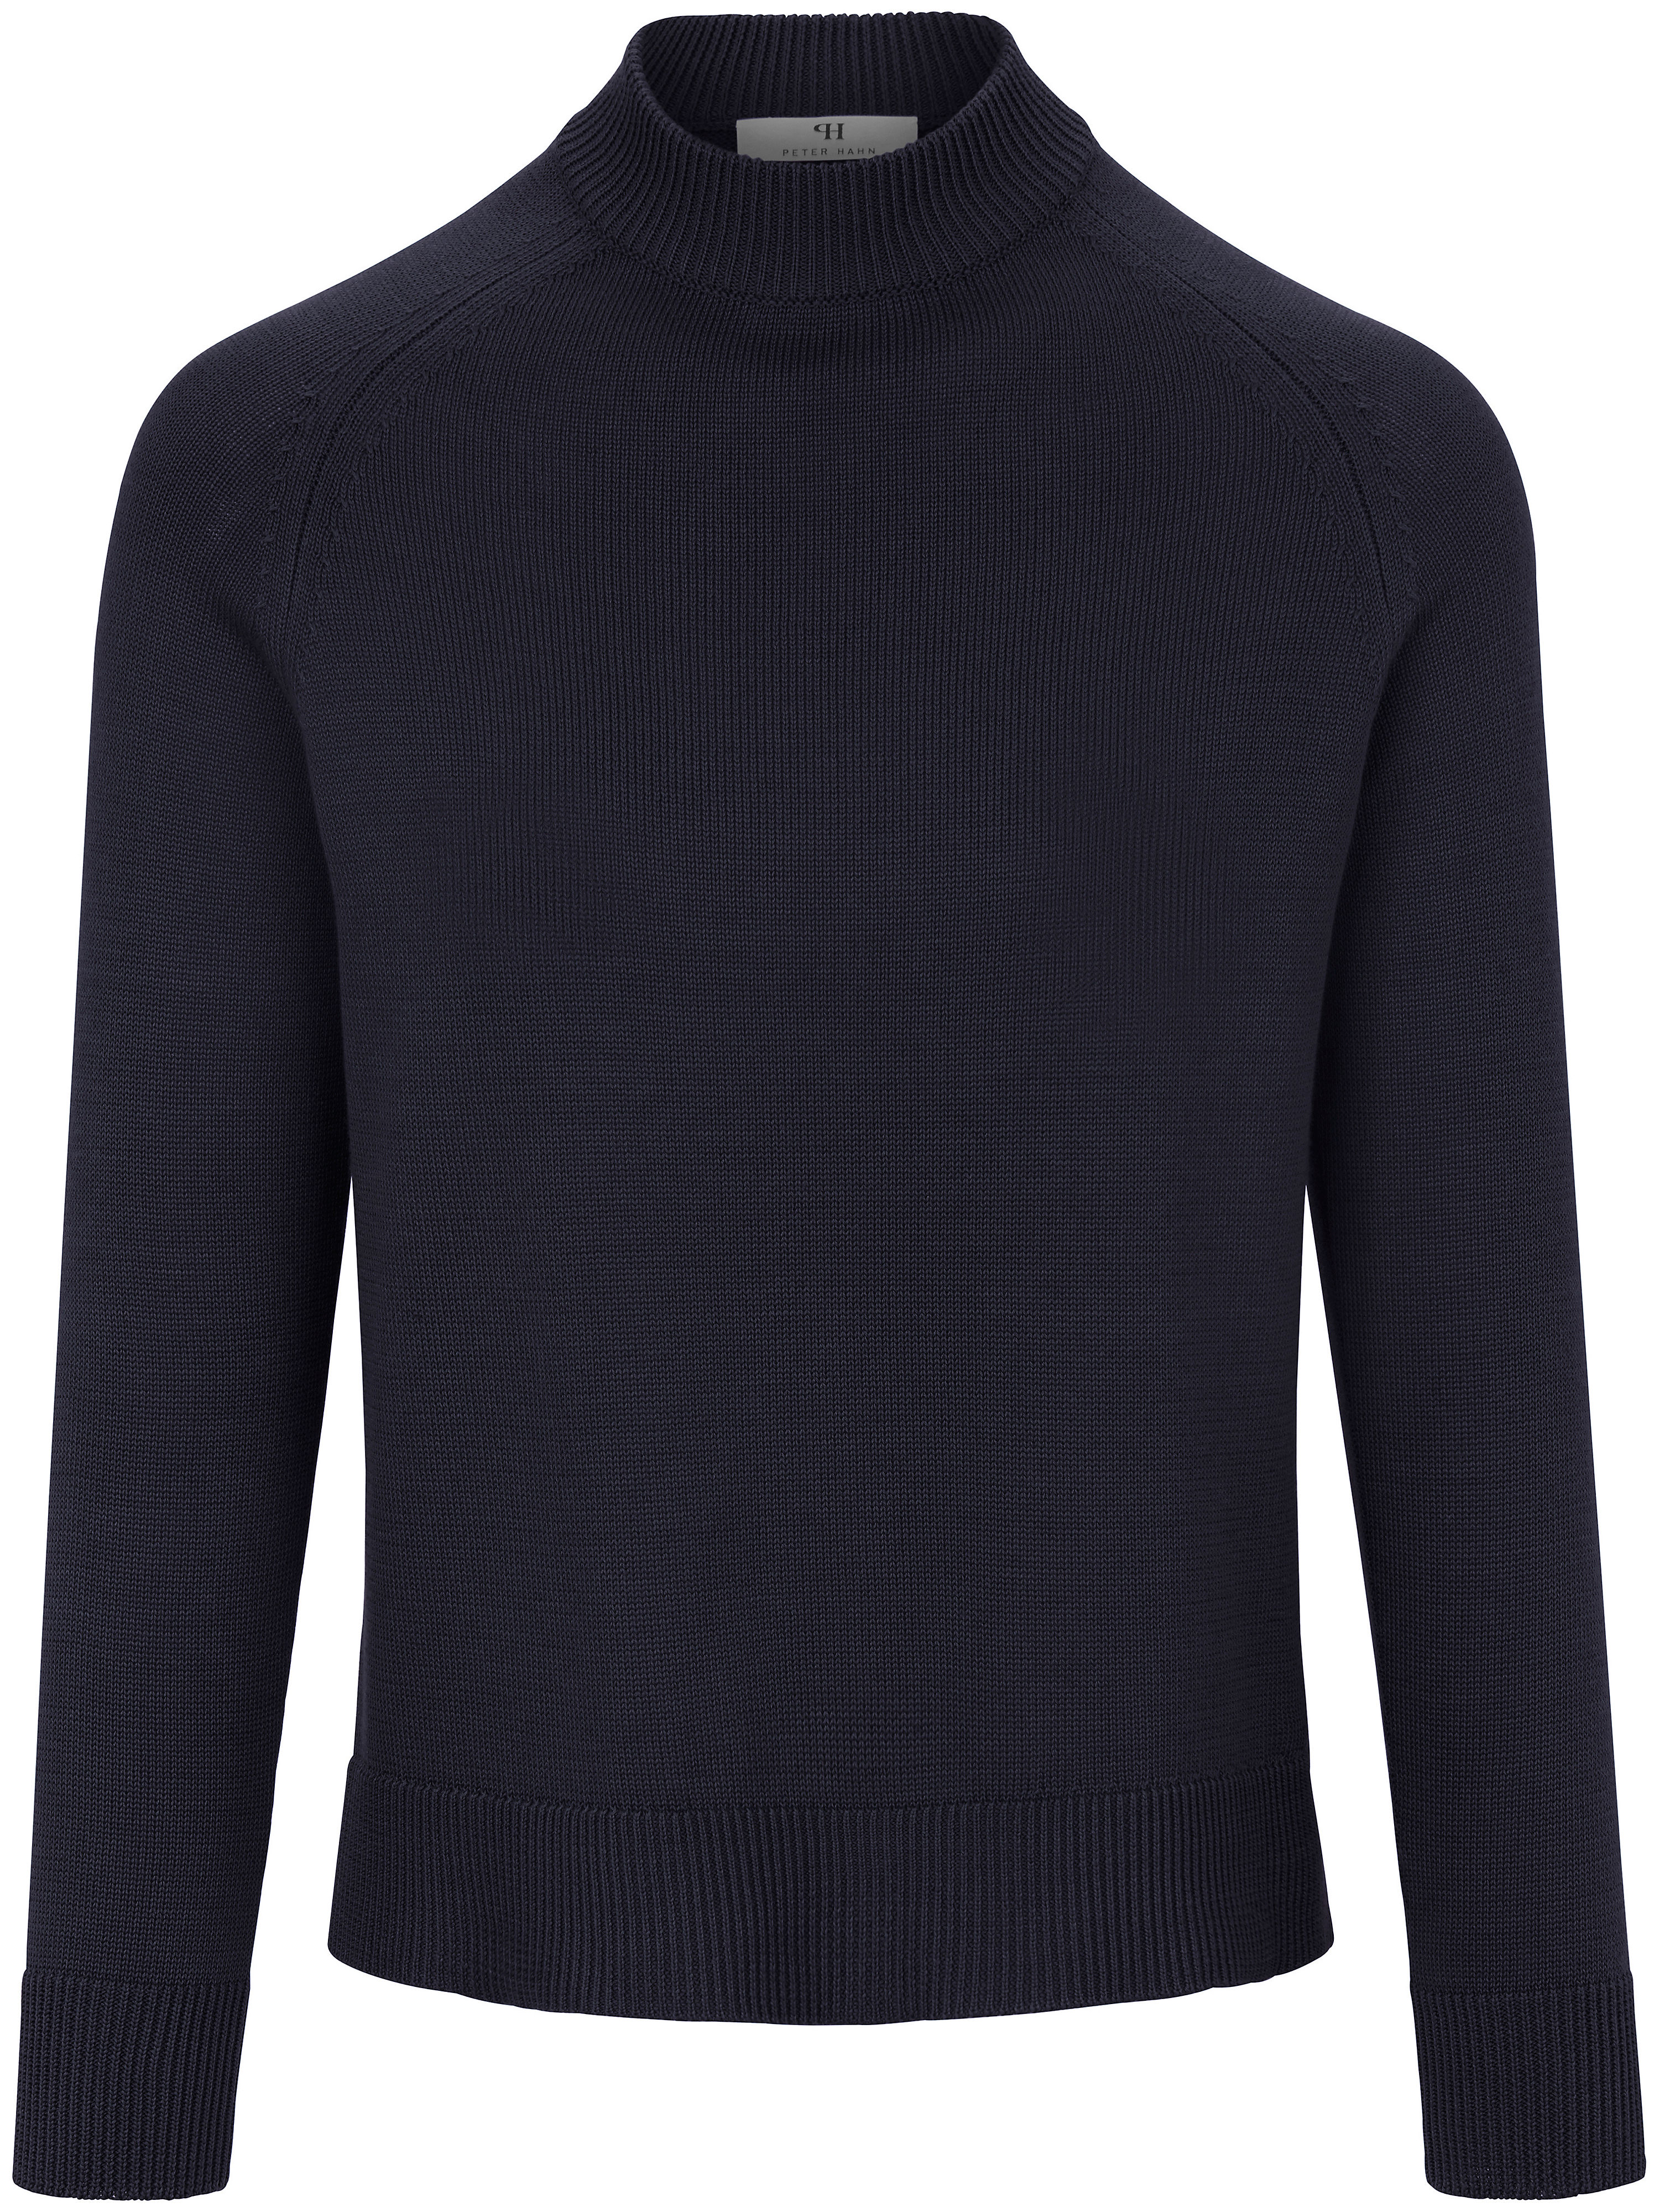 Le pull 100% coton  Peter Hahn bleu taille 38